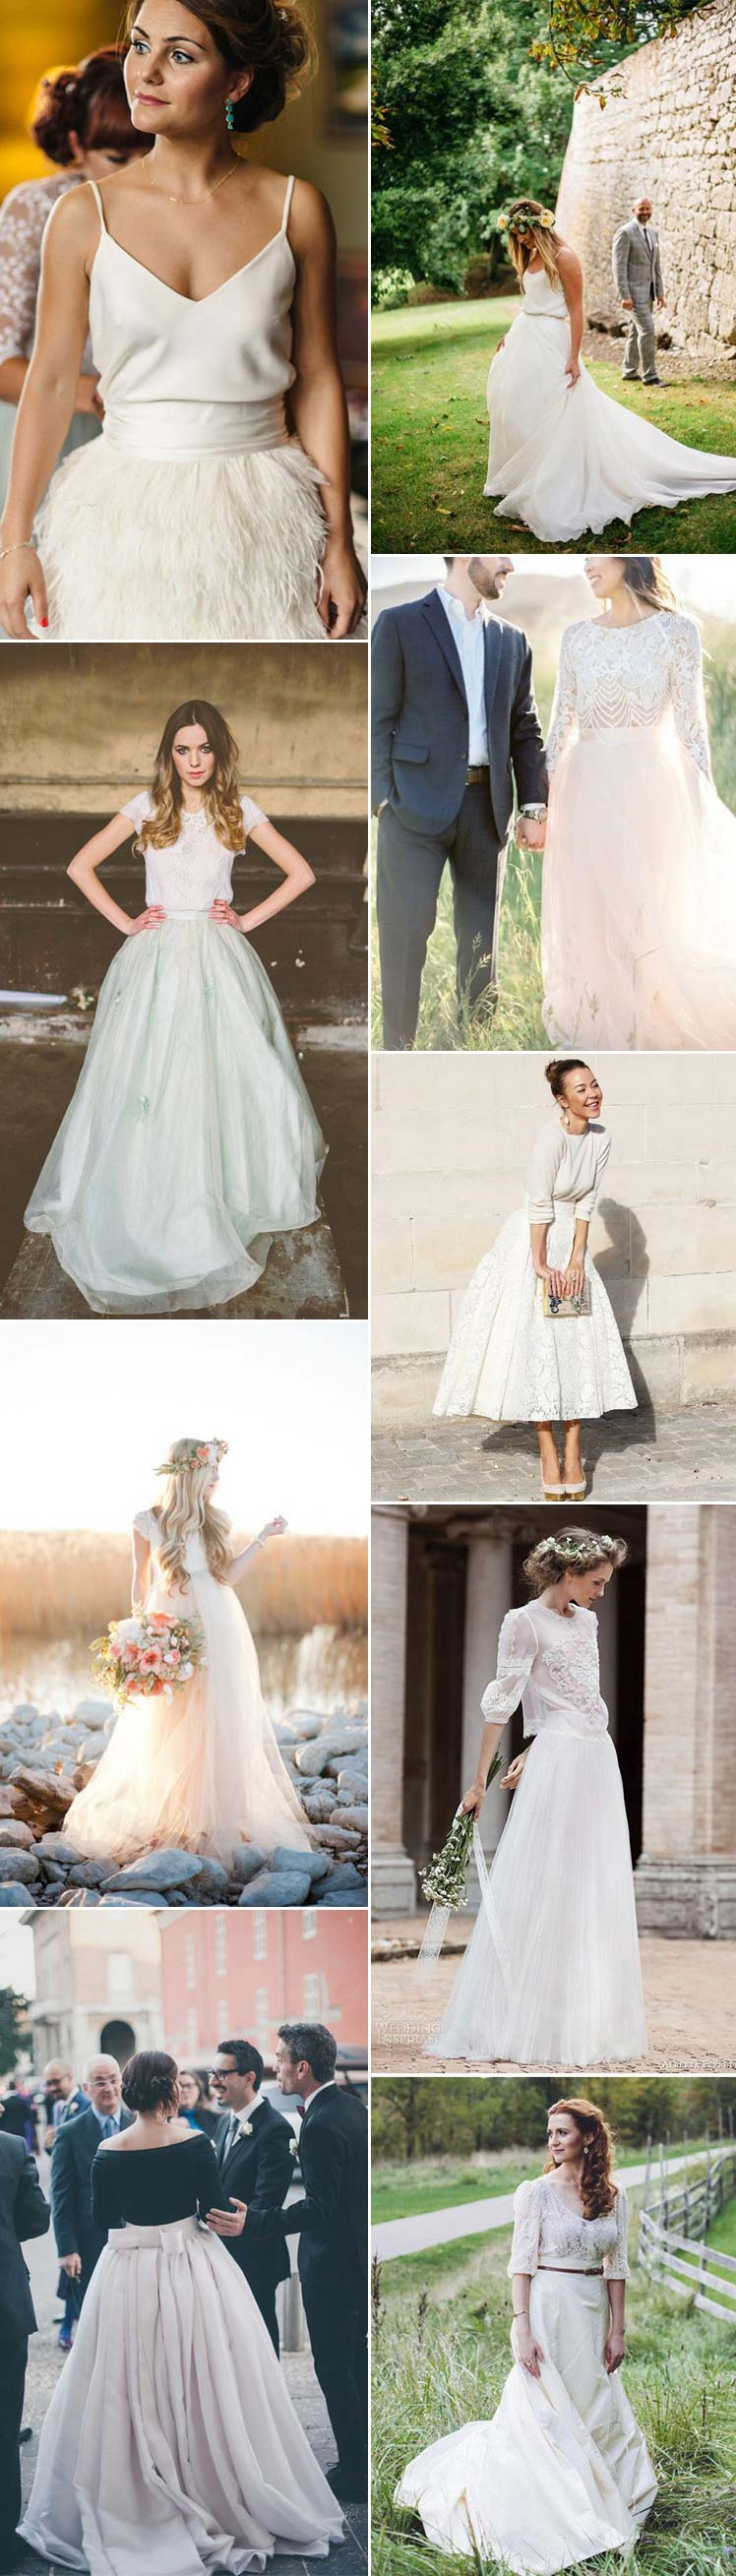 consider separates for your wedding day